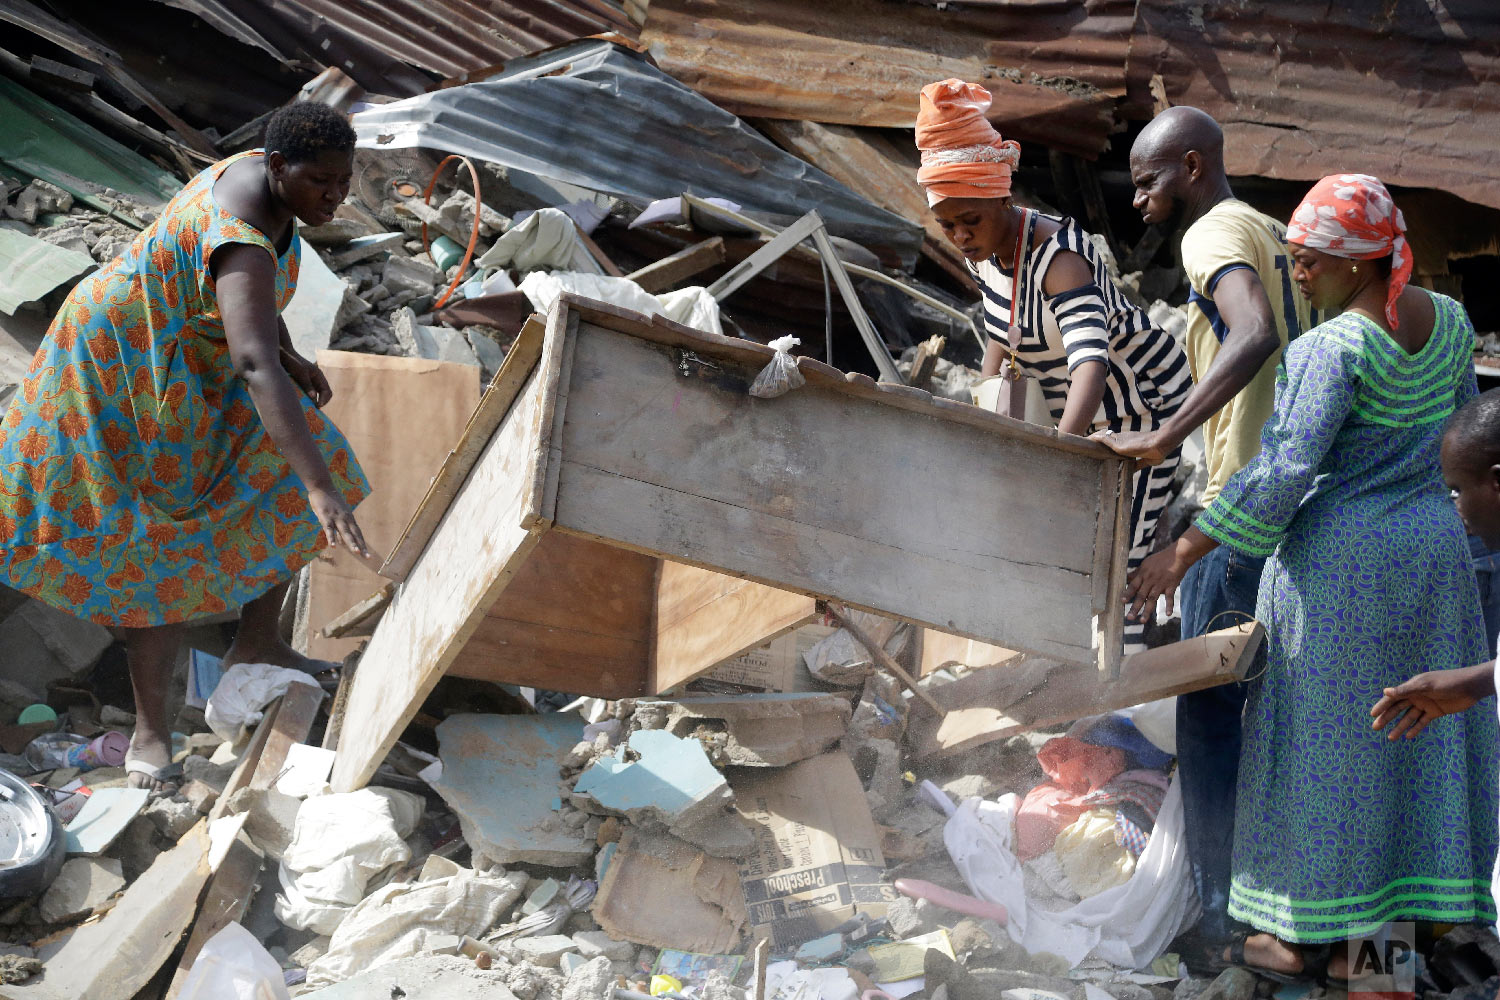 Local people look through debris at the scene after a building collapsed in Lagos, Nigeria, Thursday, March 14, 2019. (AP Photo/Sunday Alamba)